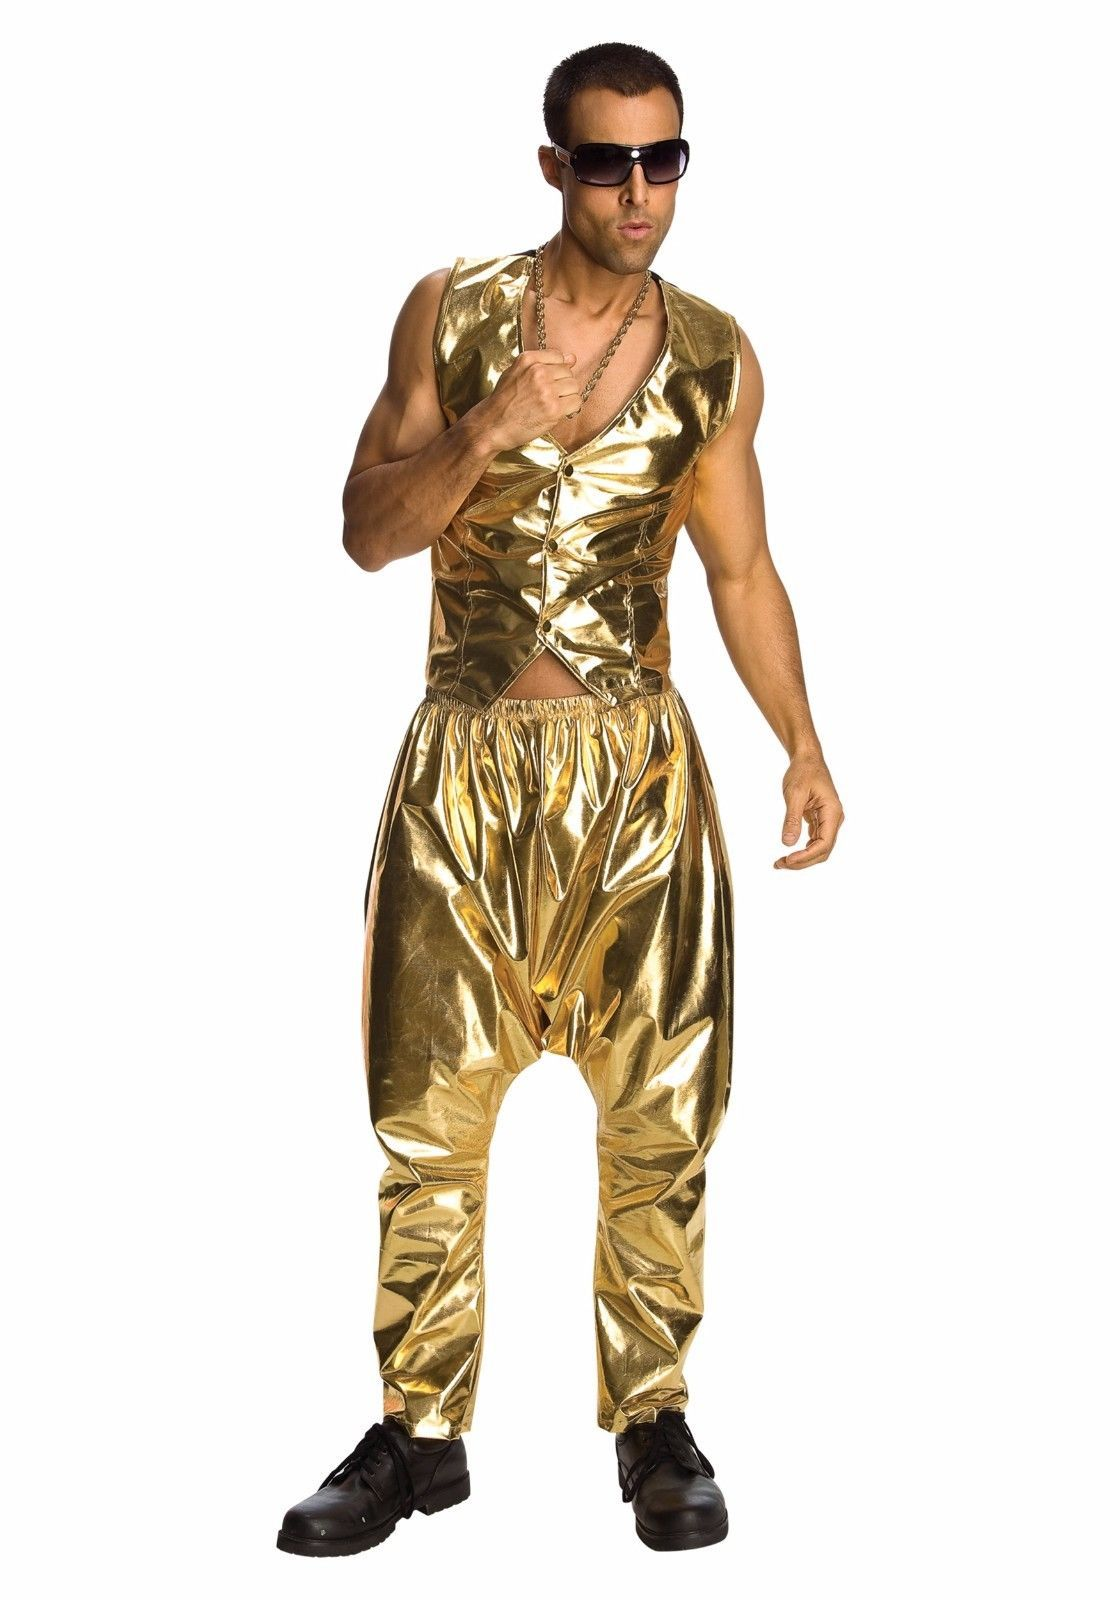 9.85 - 80S Rapper Mc Hammer Vanilla Ice Gold Pants Costume - Fast - 80 s  Parachute Pant  ebay  Fashion 7df3dd4c8e3